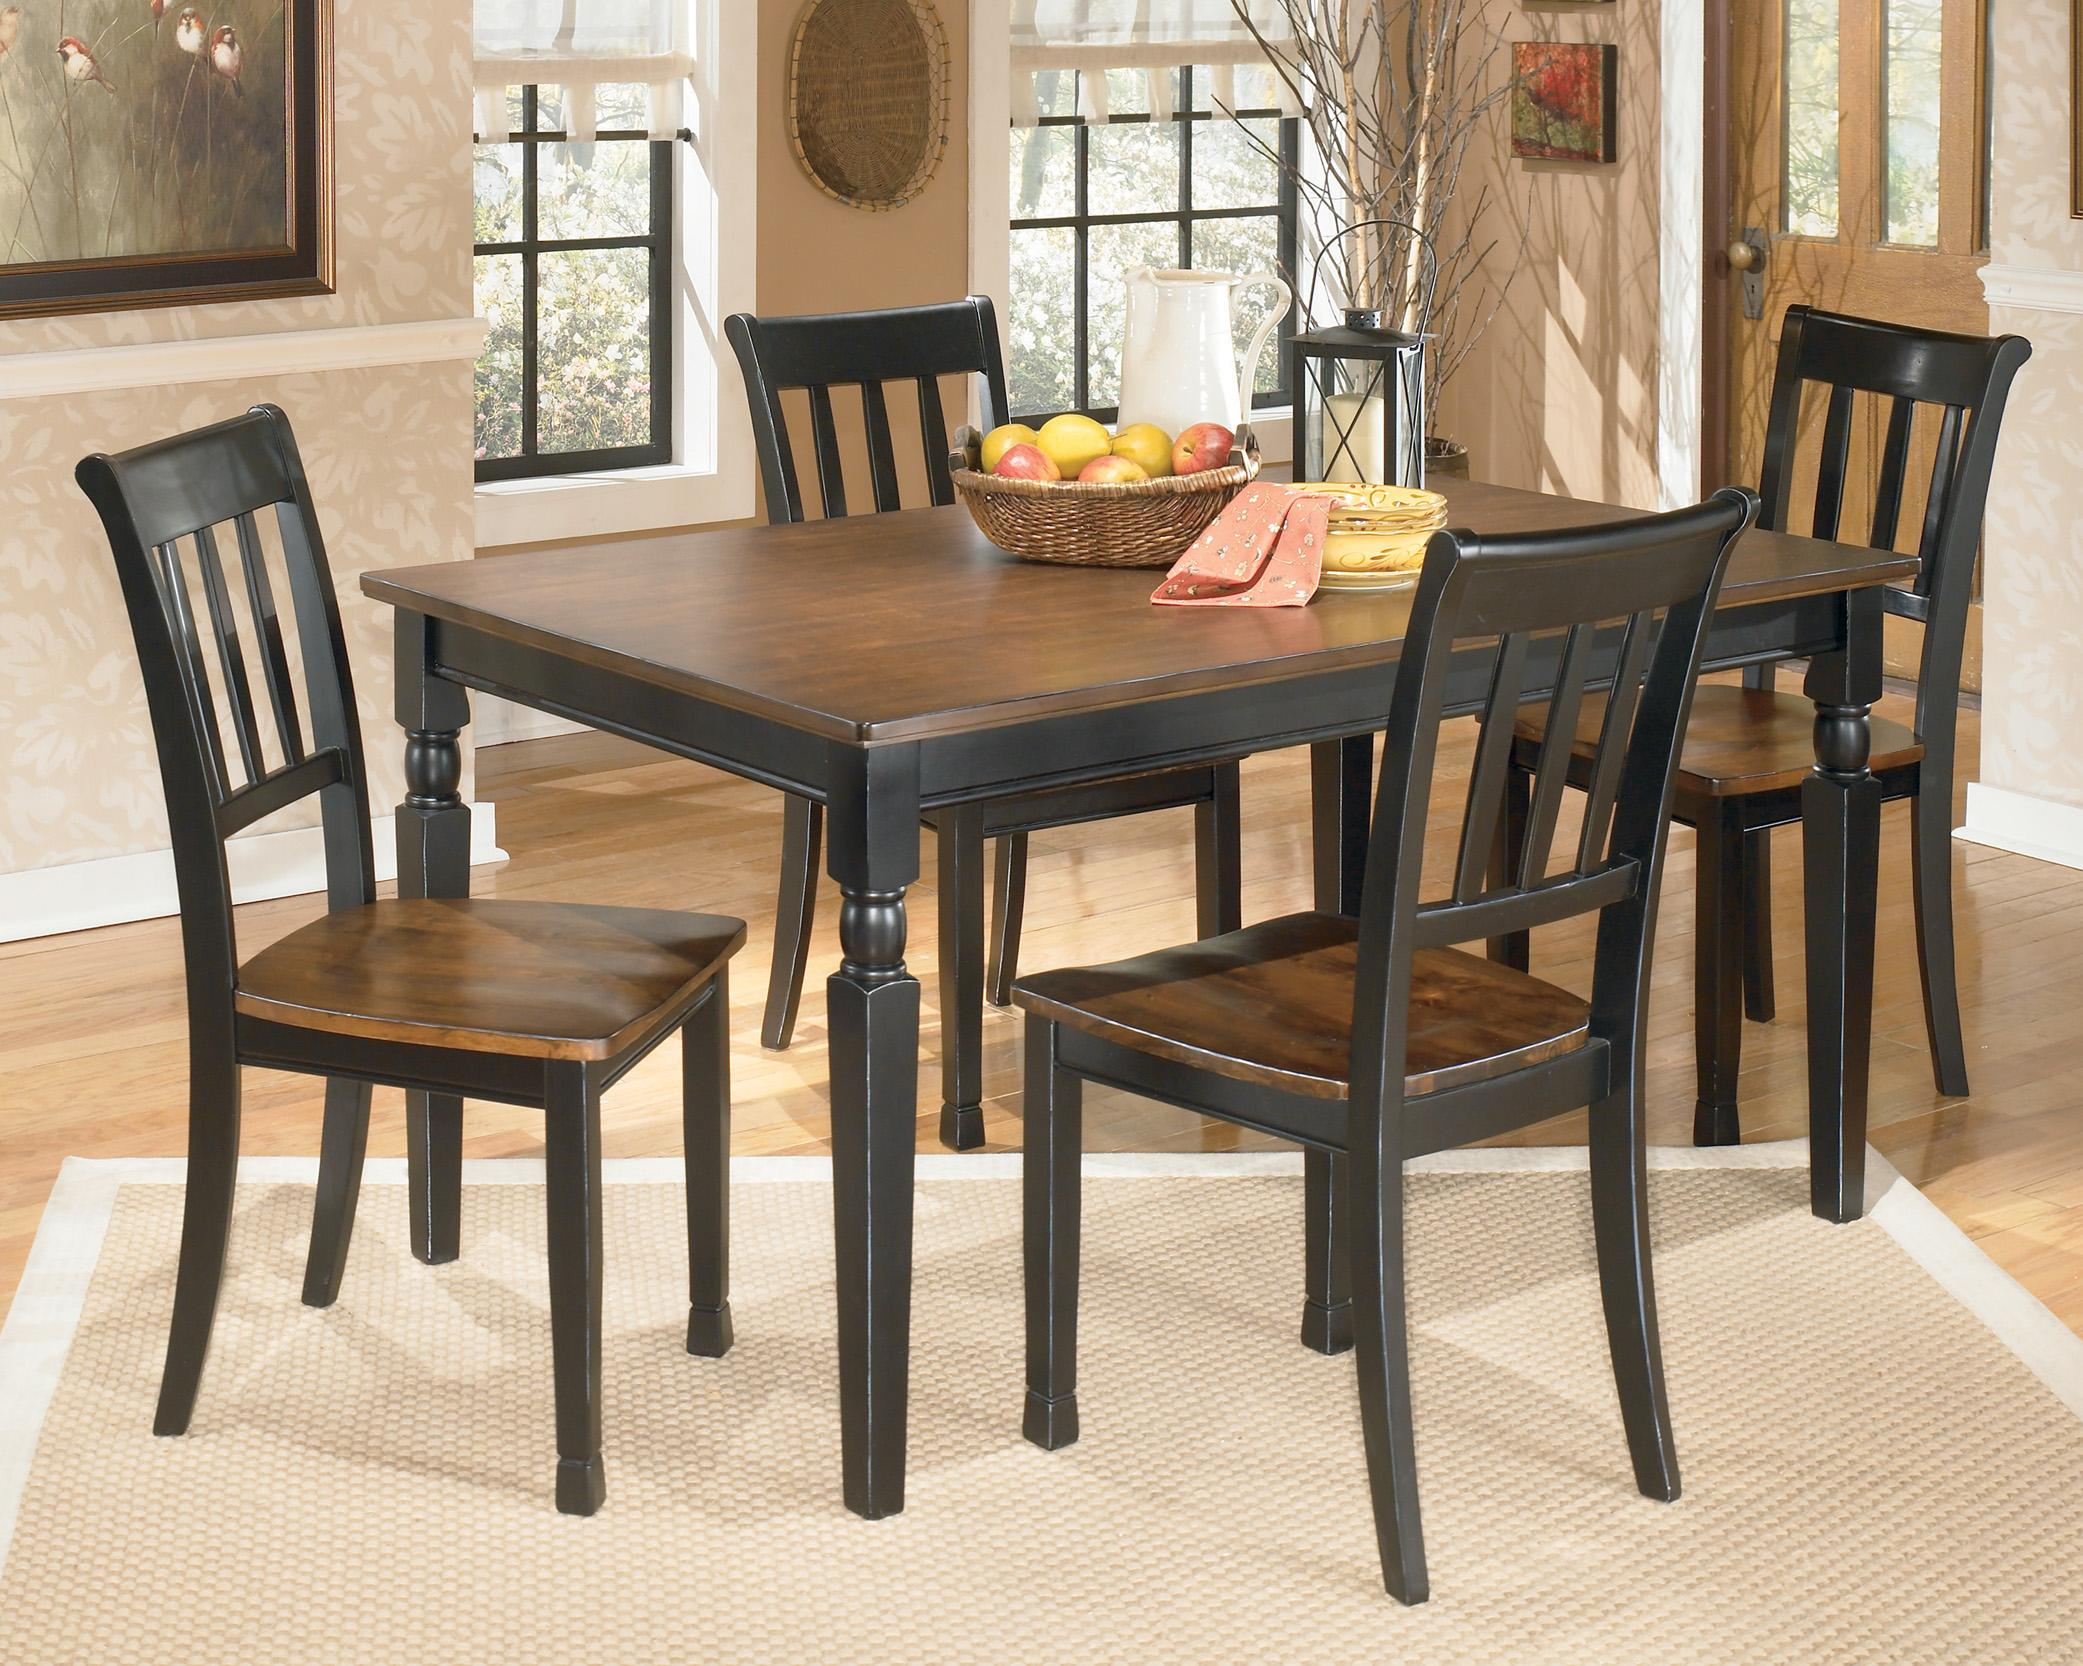 Owingsville 5-Piece Rectangular Dining Table Set by Signature Design by Ashley at Northeast Factory Direct